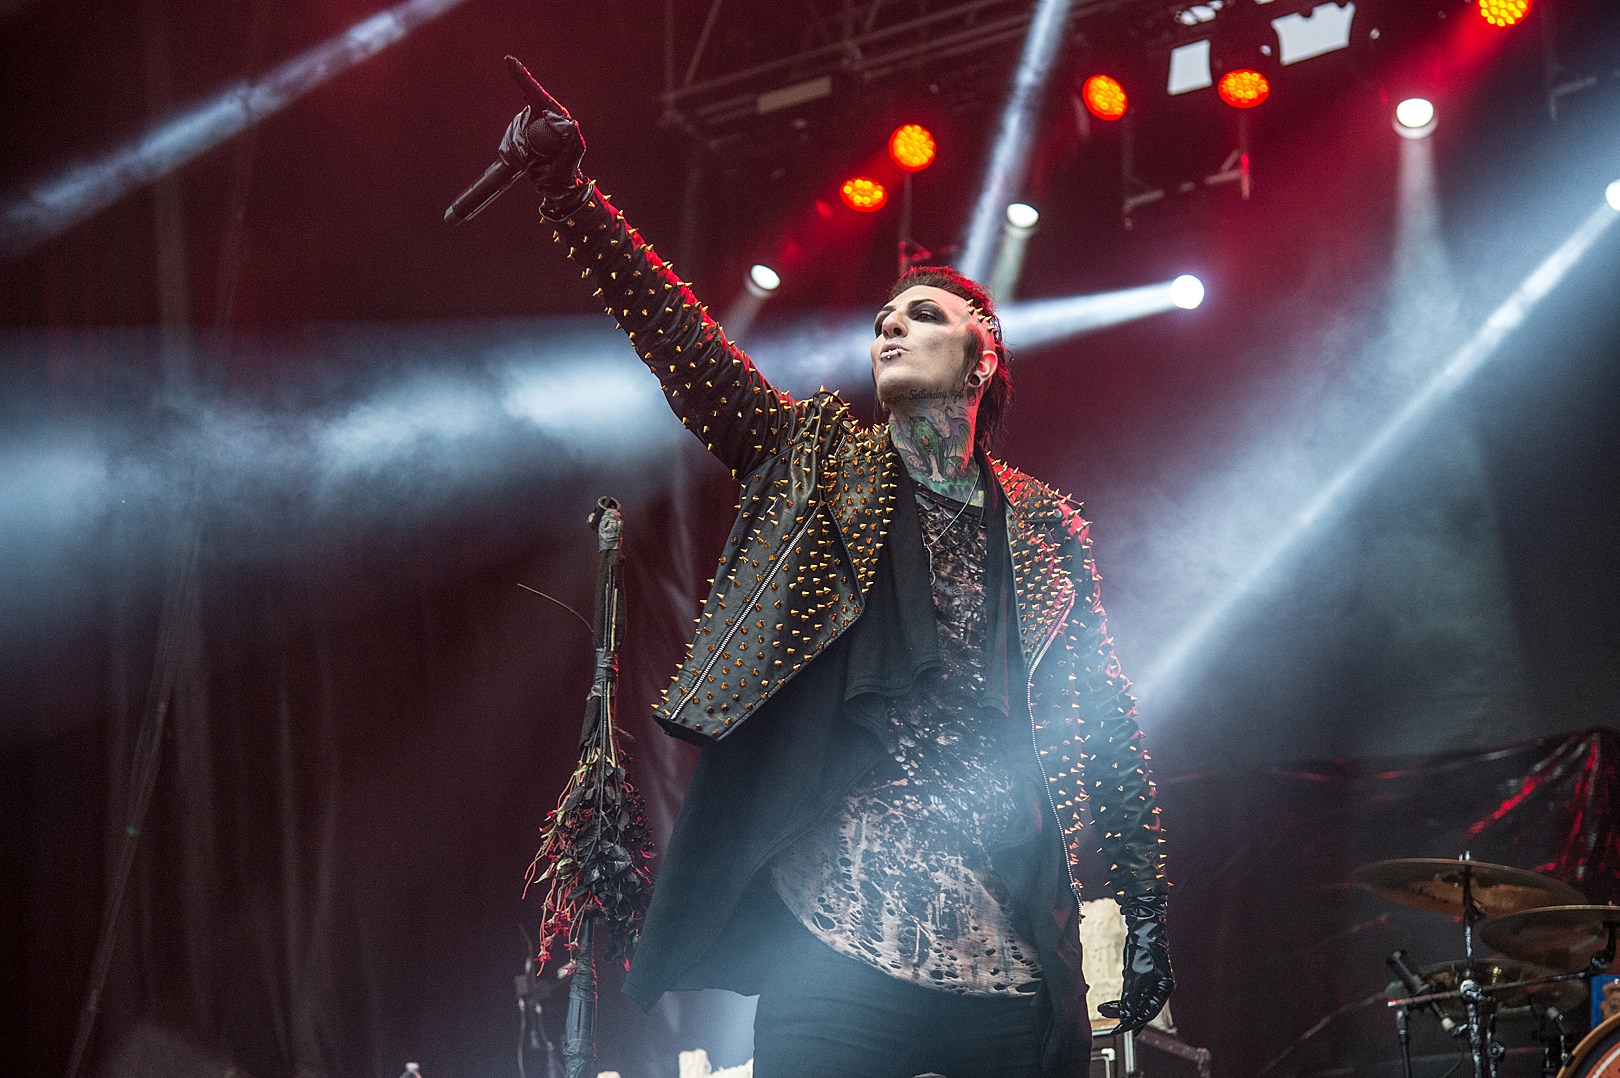 Motionless in White Announce 2020 Tour With Knocked Loose, Stick to Your Guns + Ovtlier